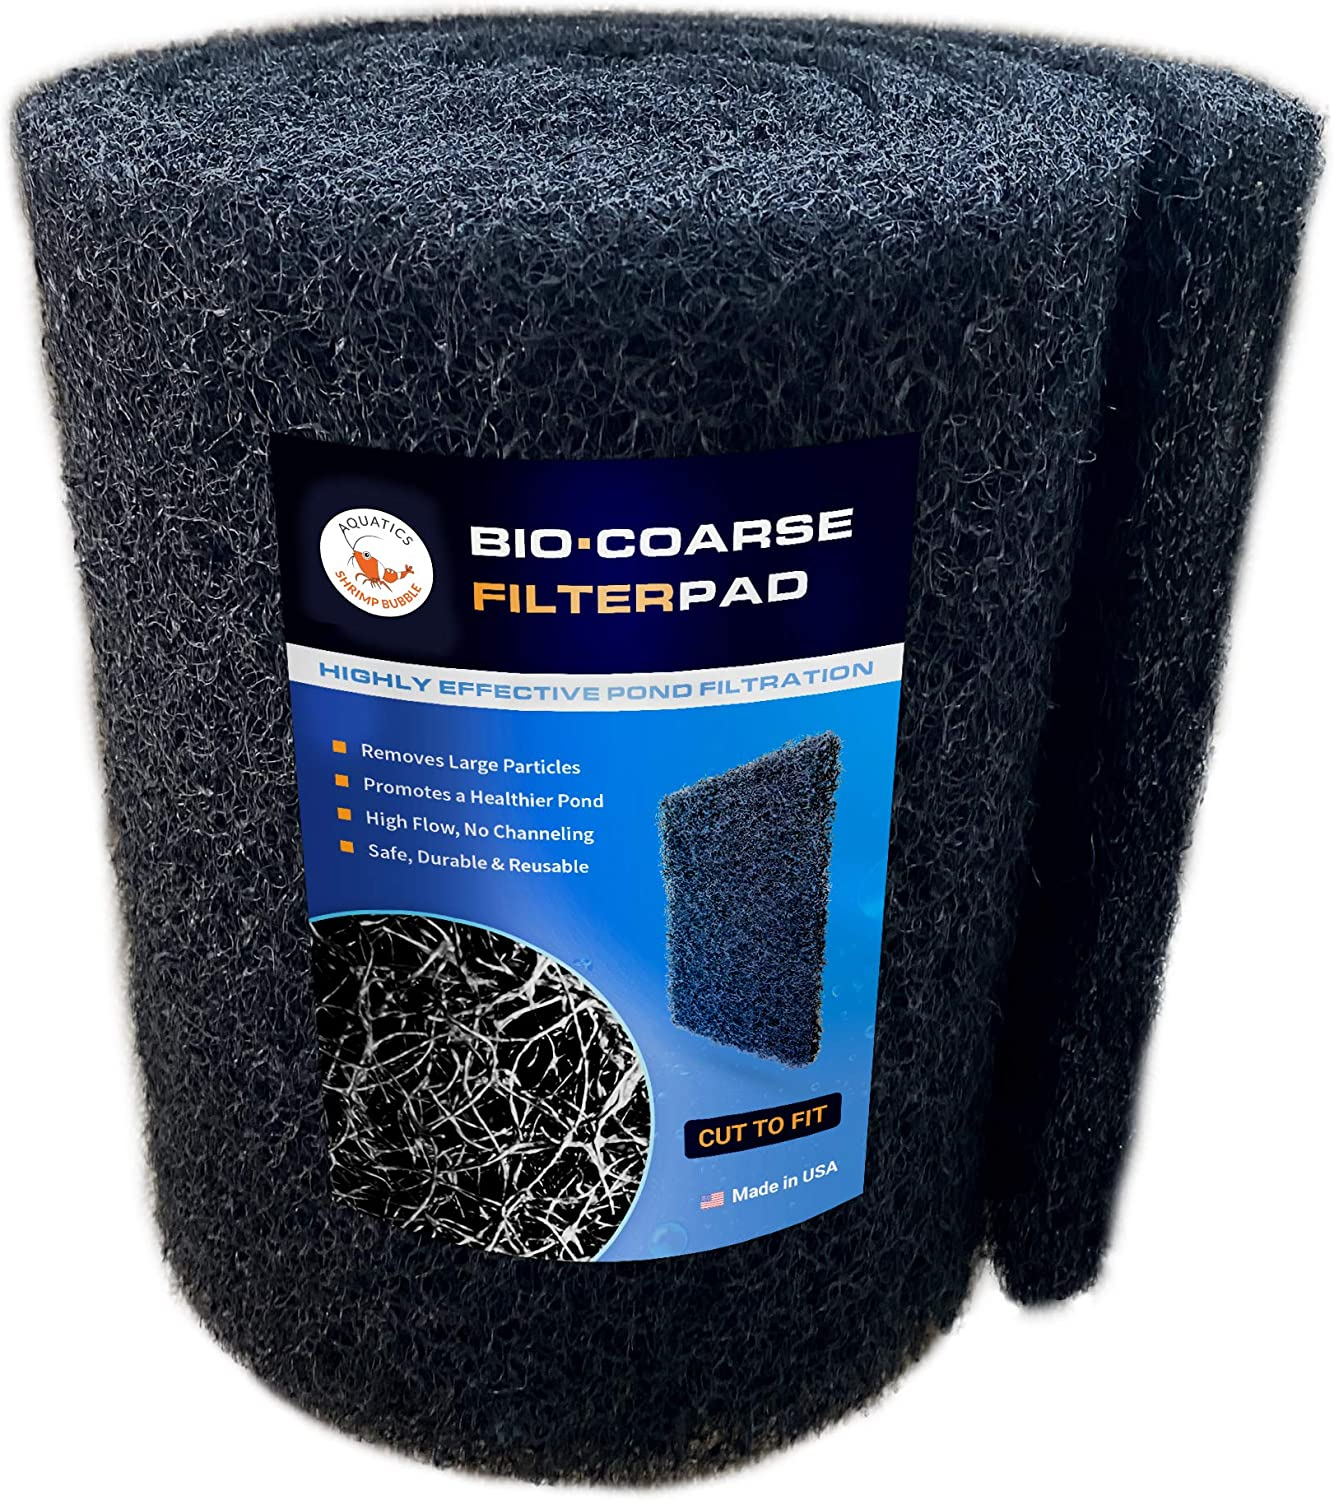 SHRIMP BUBBLE Koi Pond Filter Media Pad COARSE Black Bulk Roll Water Garden Rigid Latex Coated Durable Reusable PreFilter Mat –12 inches by 72 inches by 1 inch Thick - Made in USA